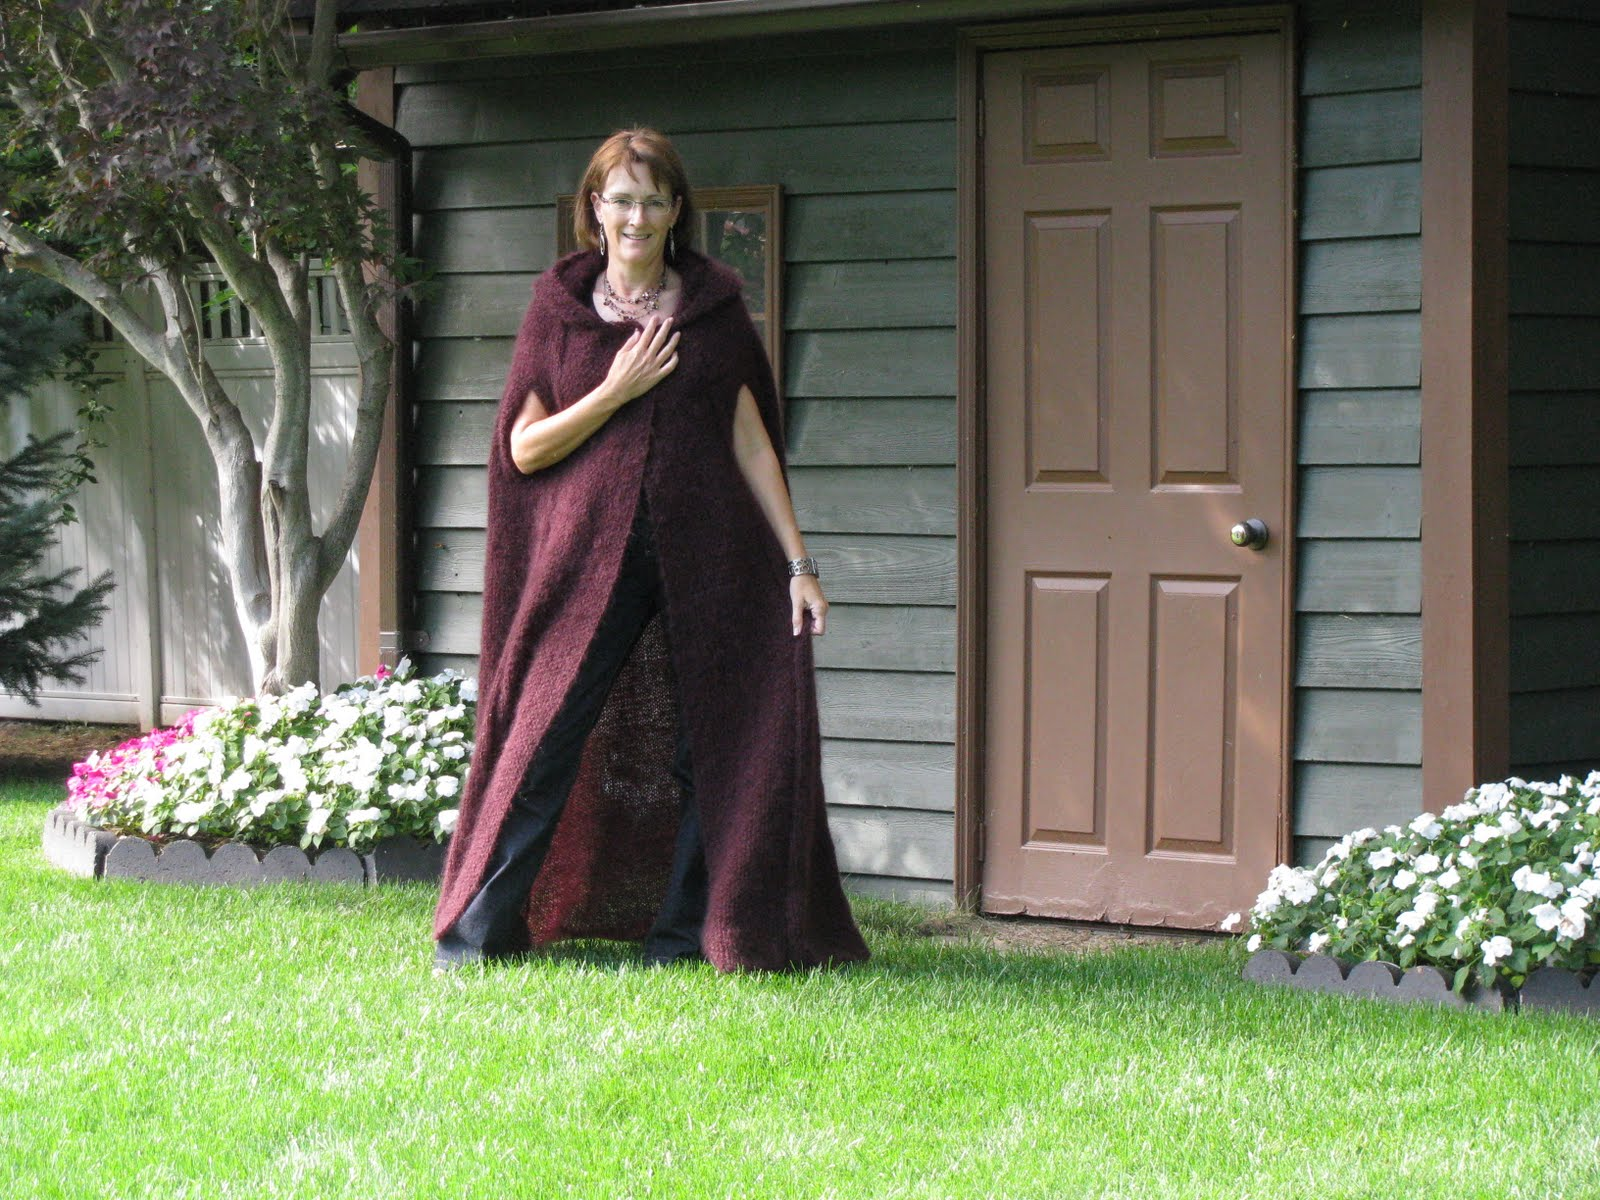 Chris Knits in Niagara: Merlot Hooded Cape